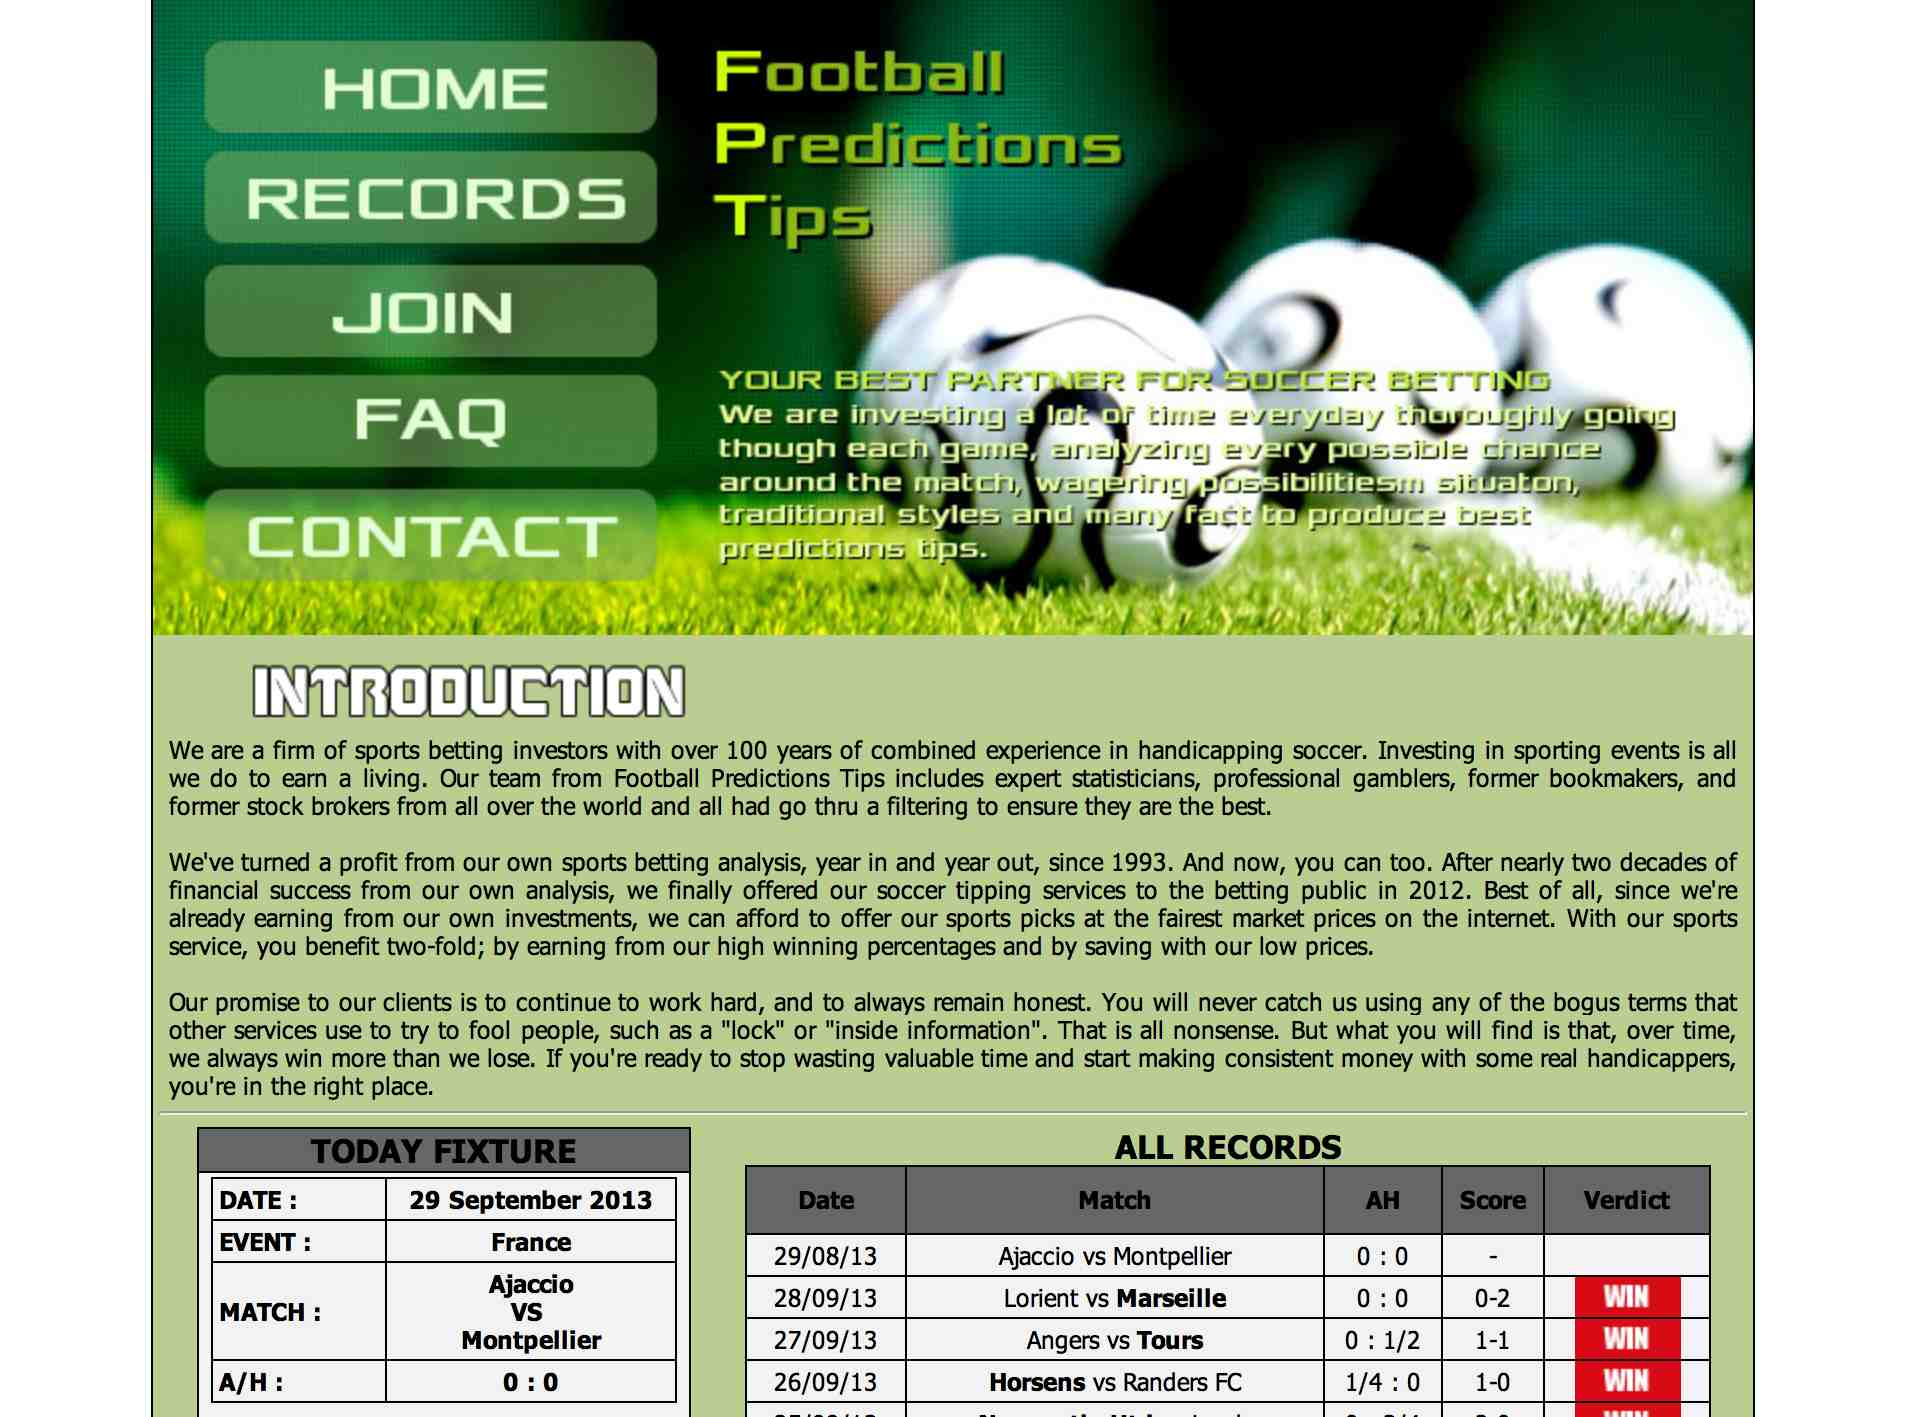 Football Predictions TIps